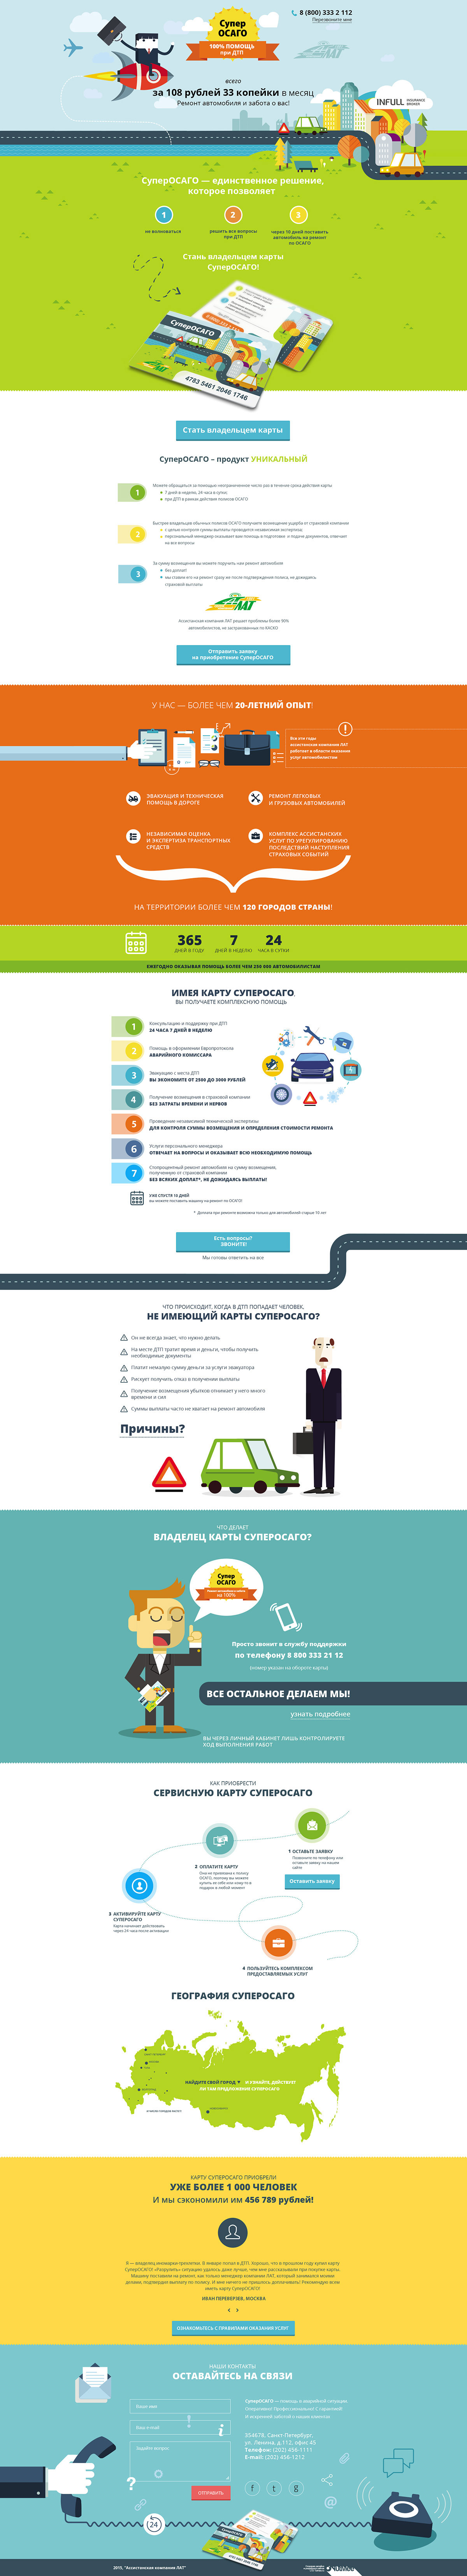 Compulsory Third Party Liability Insurance /landing page/